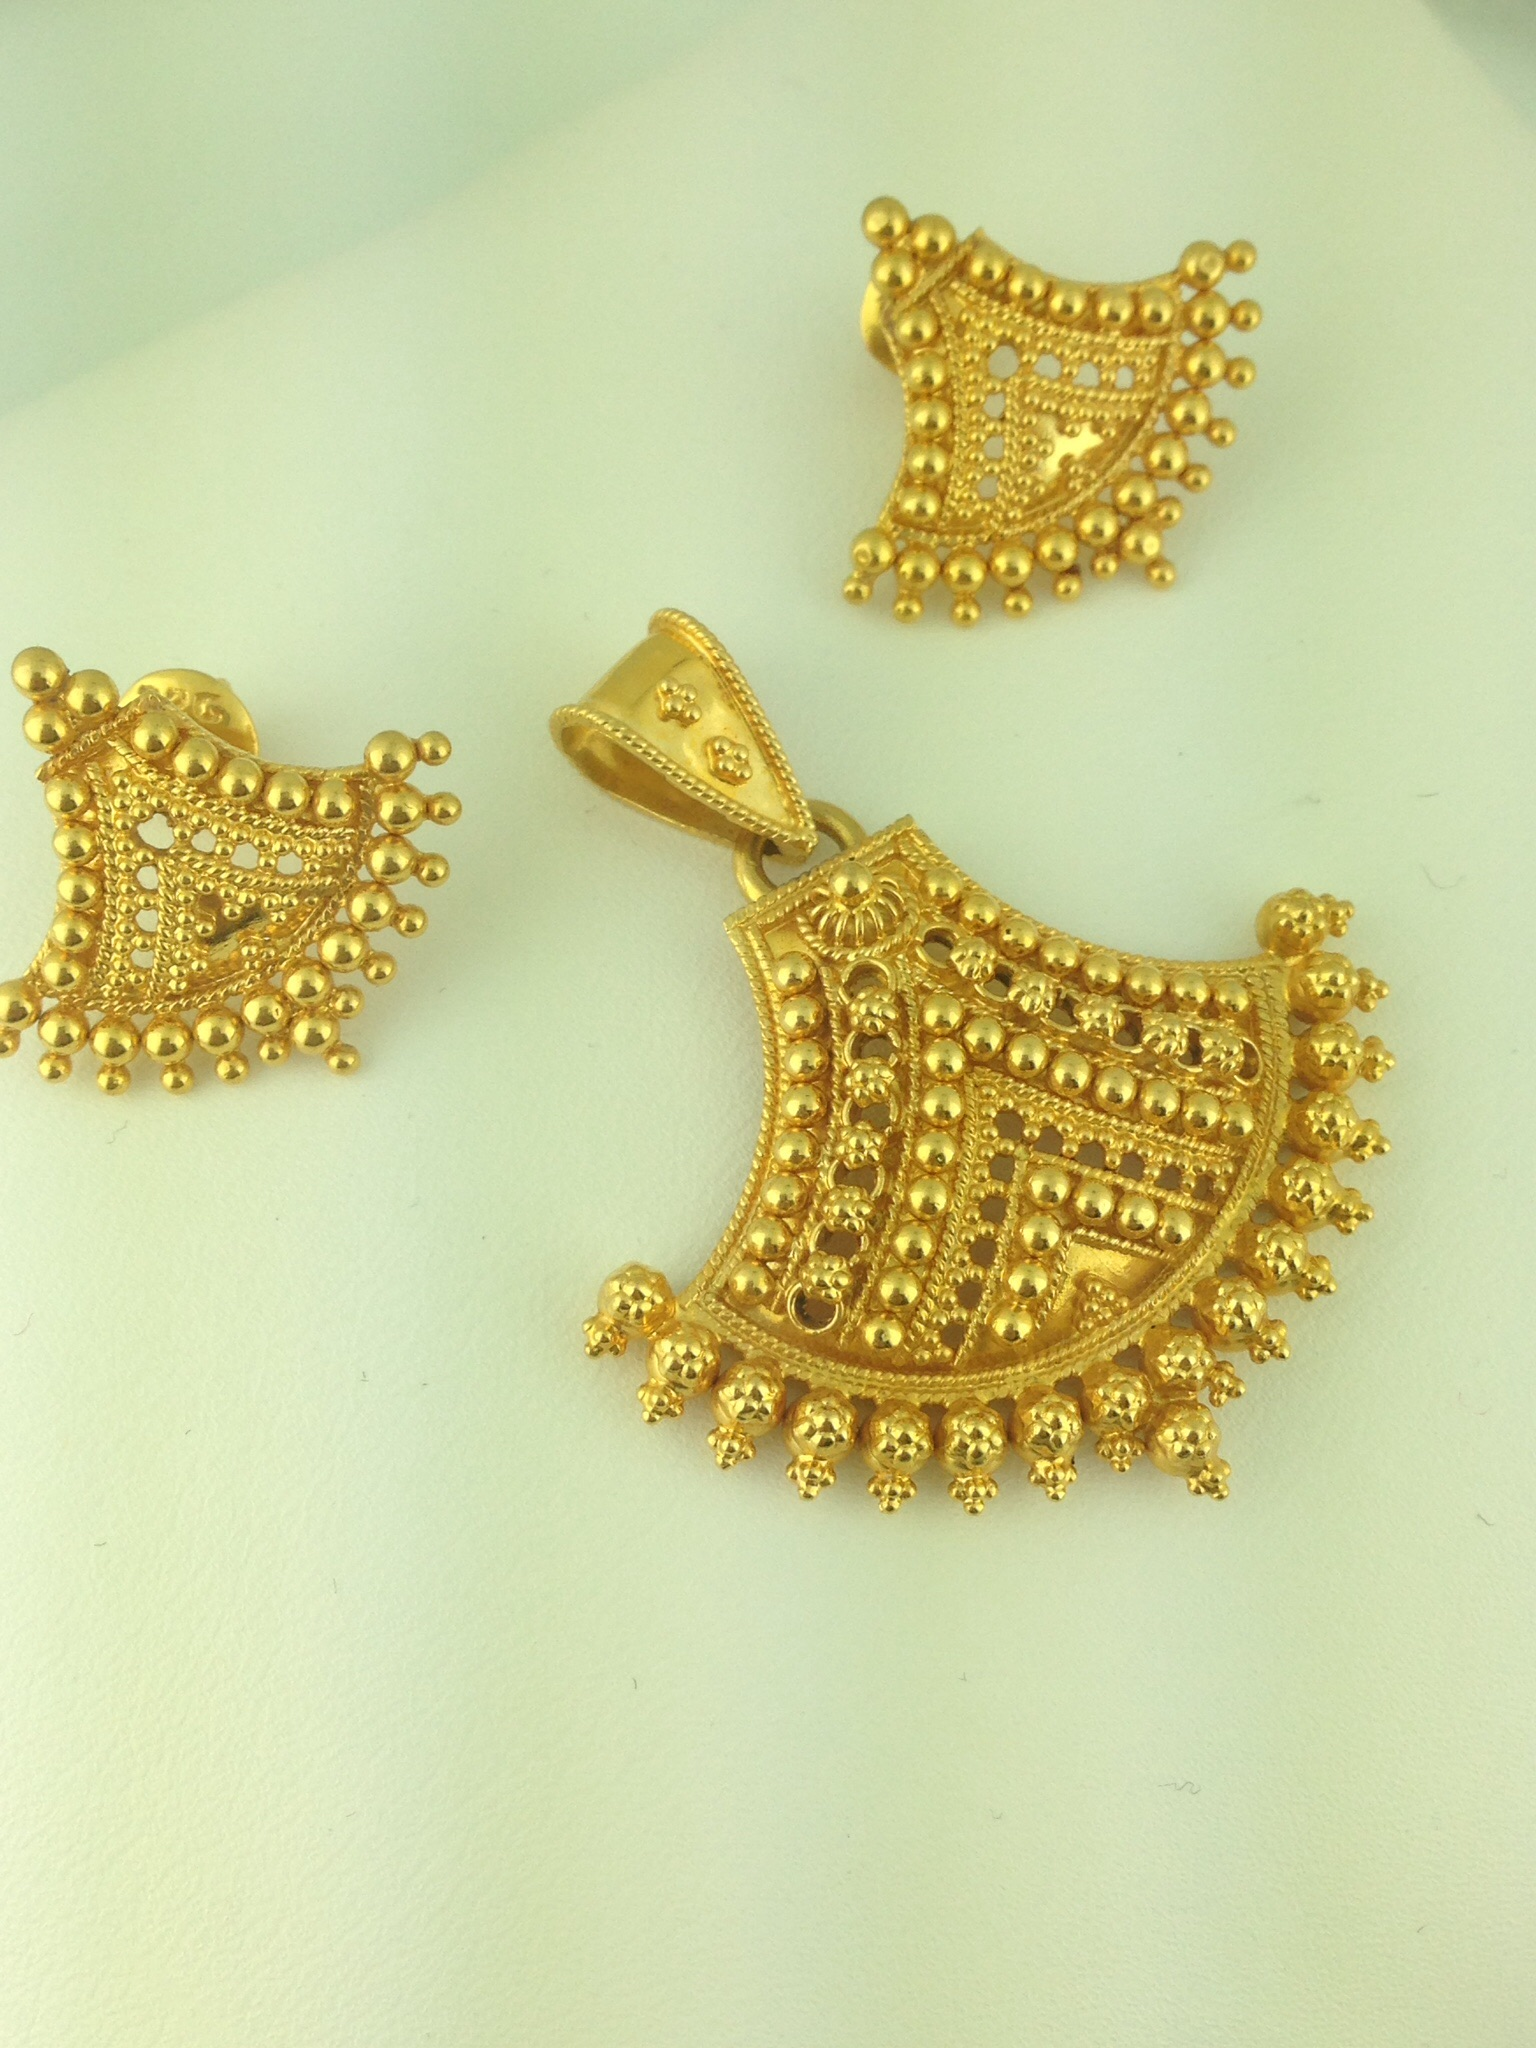 22k Gold Pendant Set 12 7 Grams Indian Kundan Ic And Jewelry In Atlanta Online